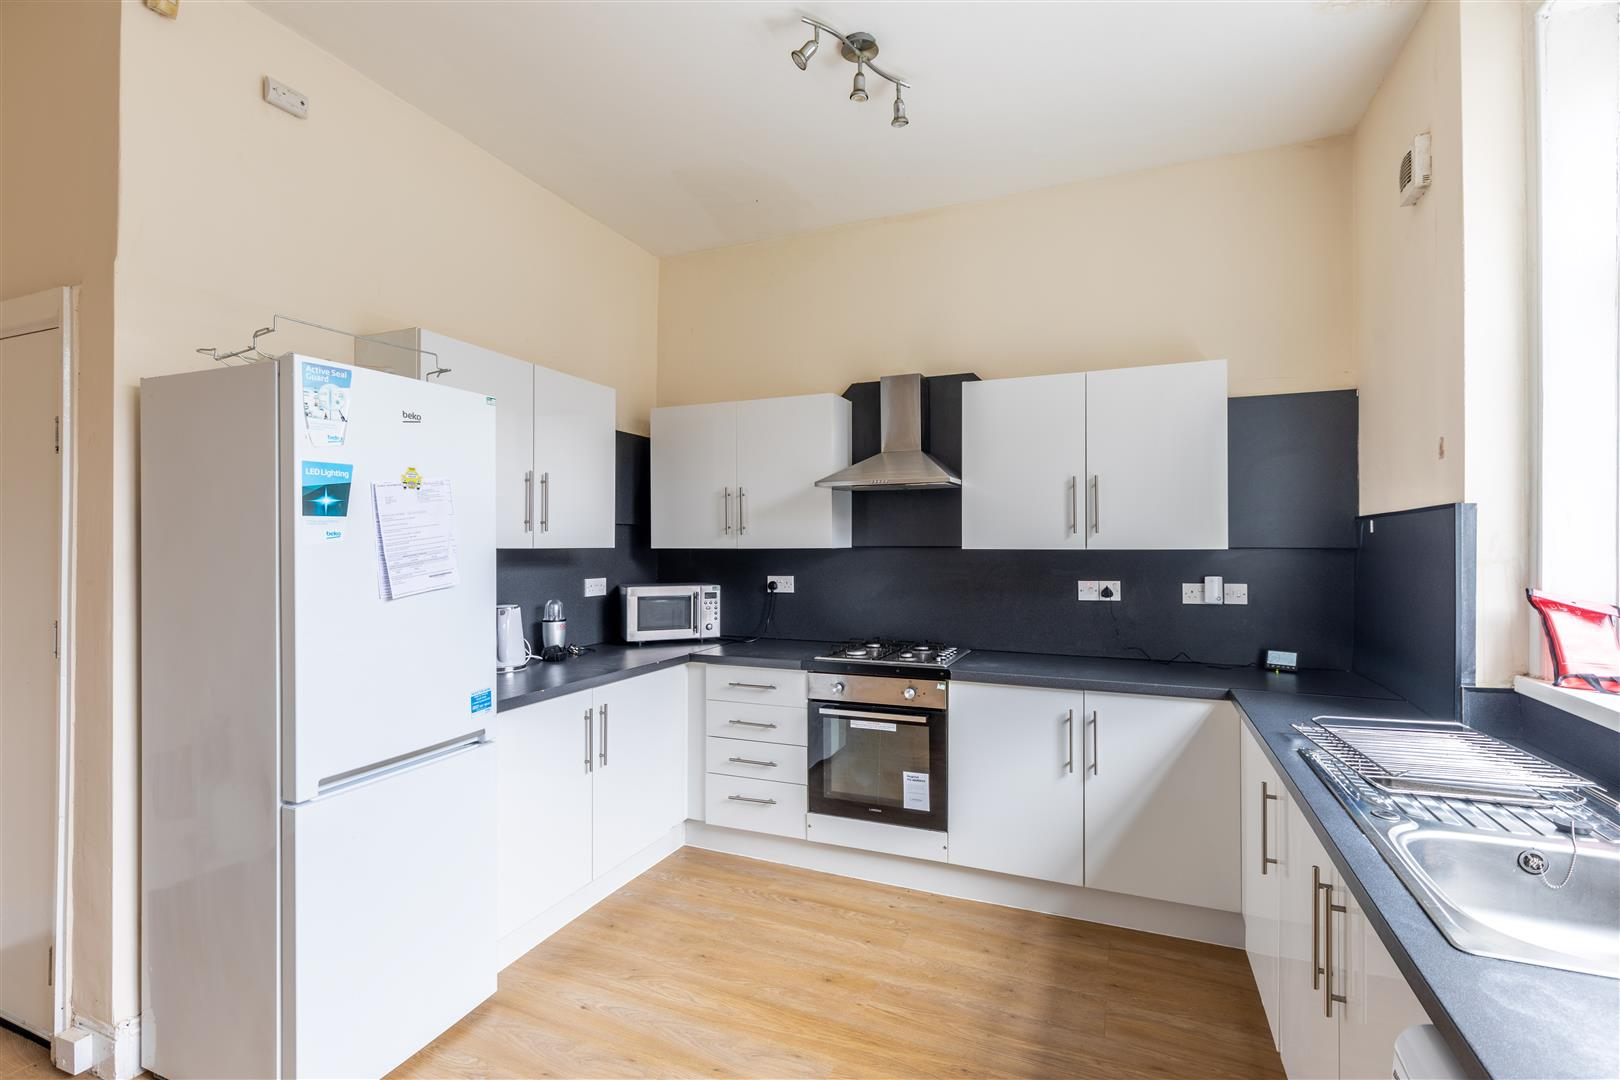 5 bed terraced house to rent in Newcastle Upon Tyne, NE6 5BT  - Property Image 7